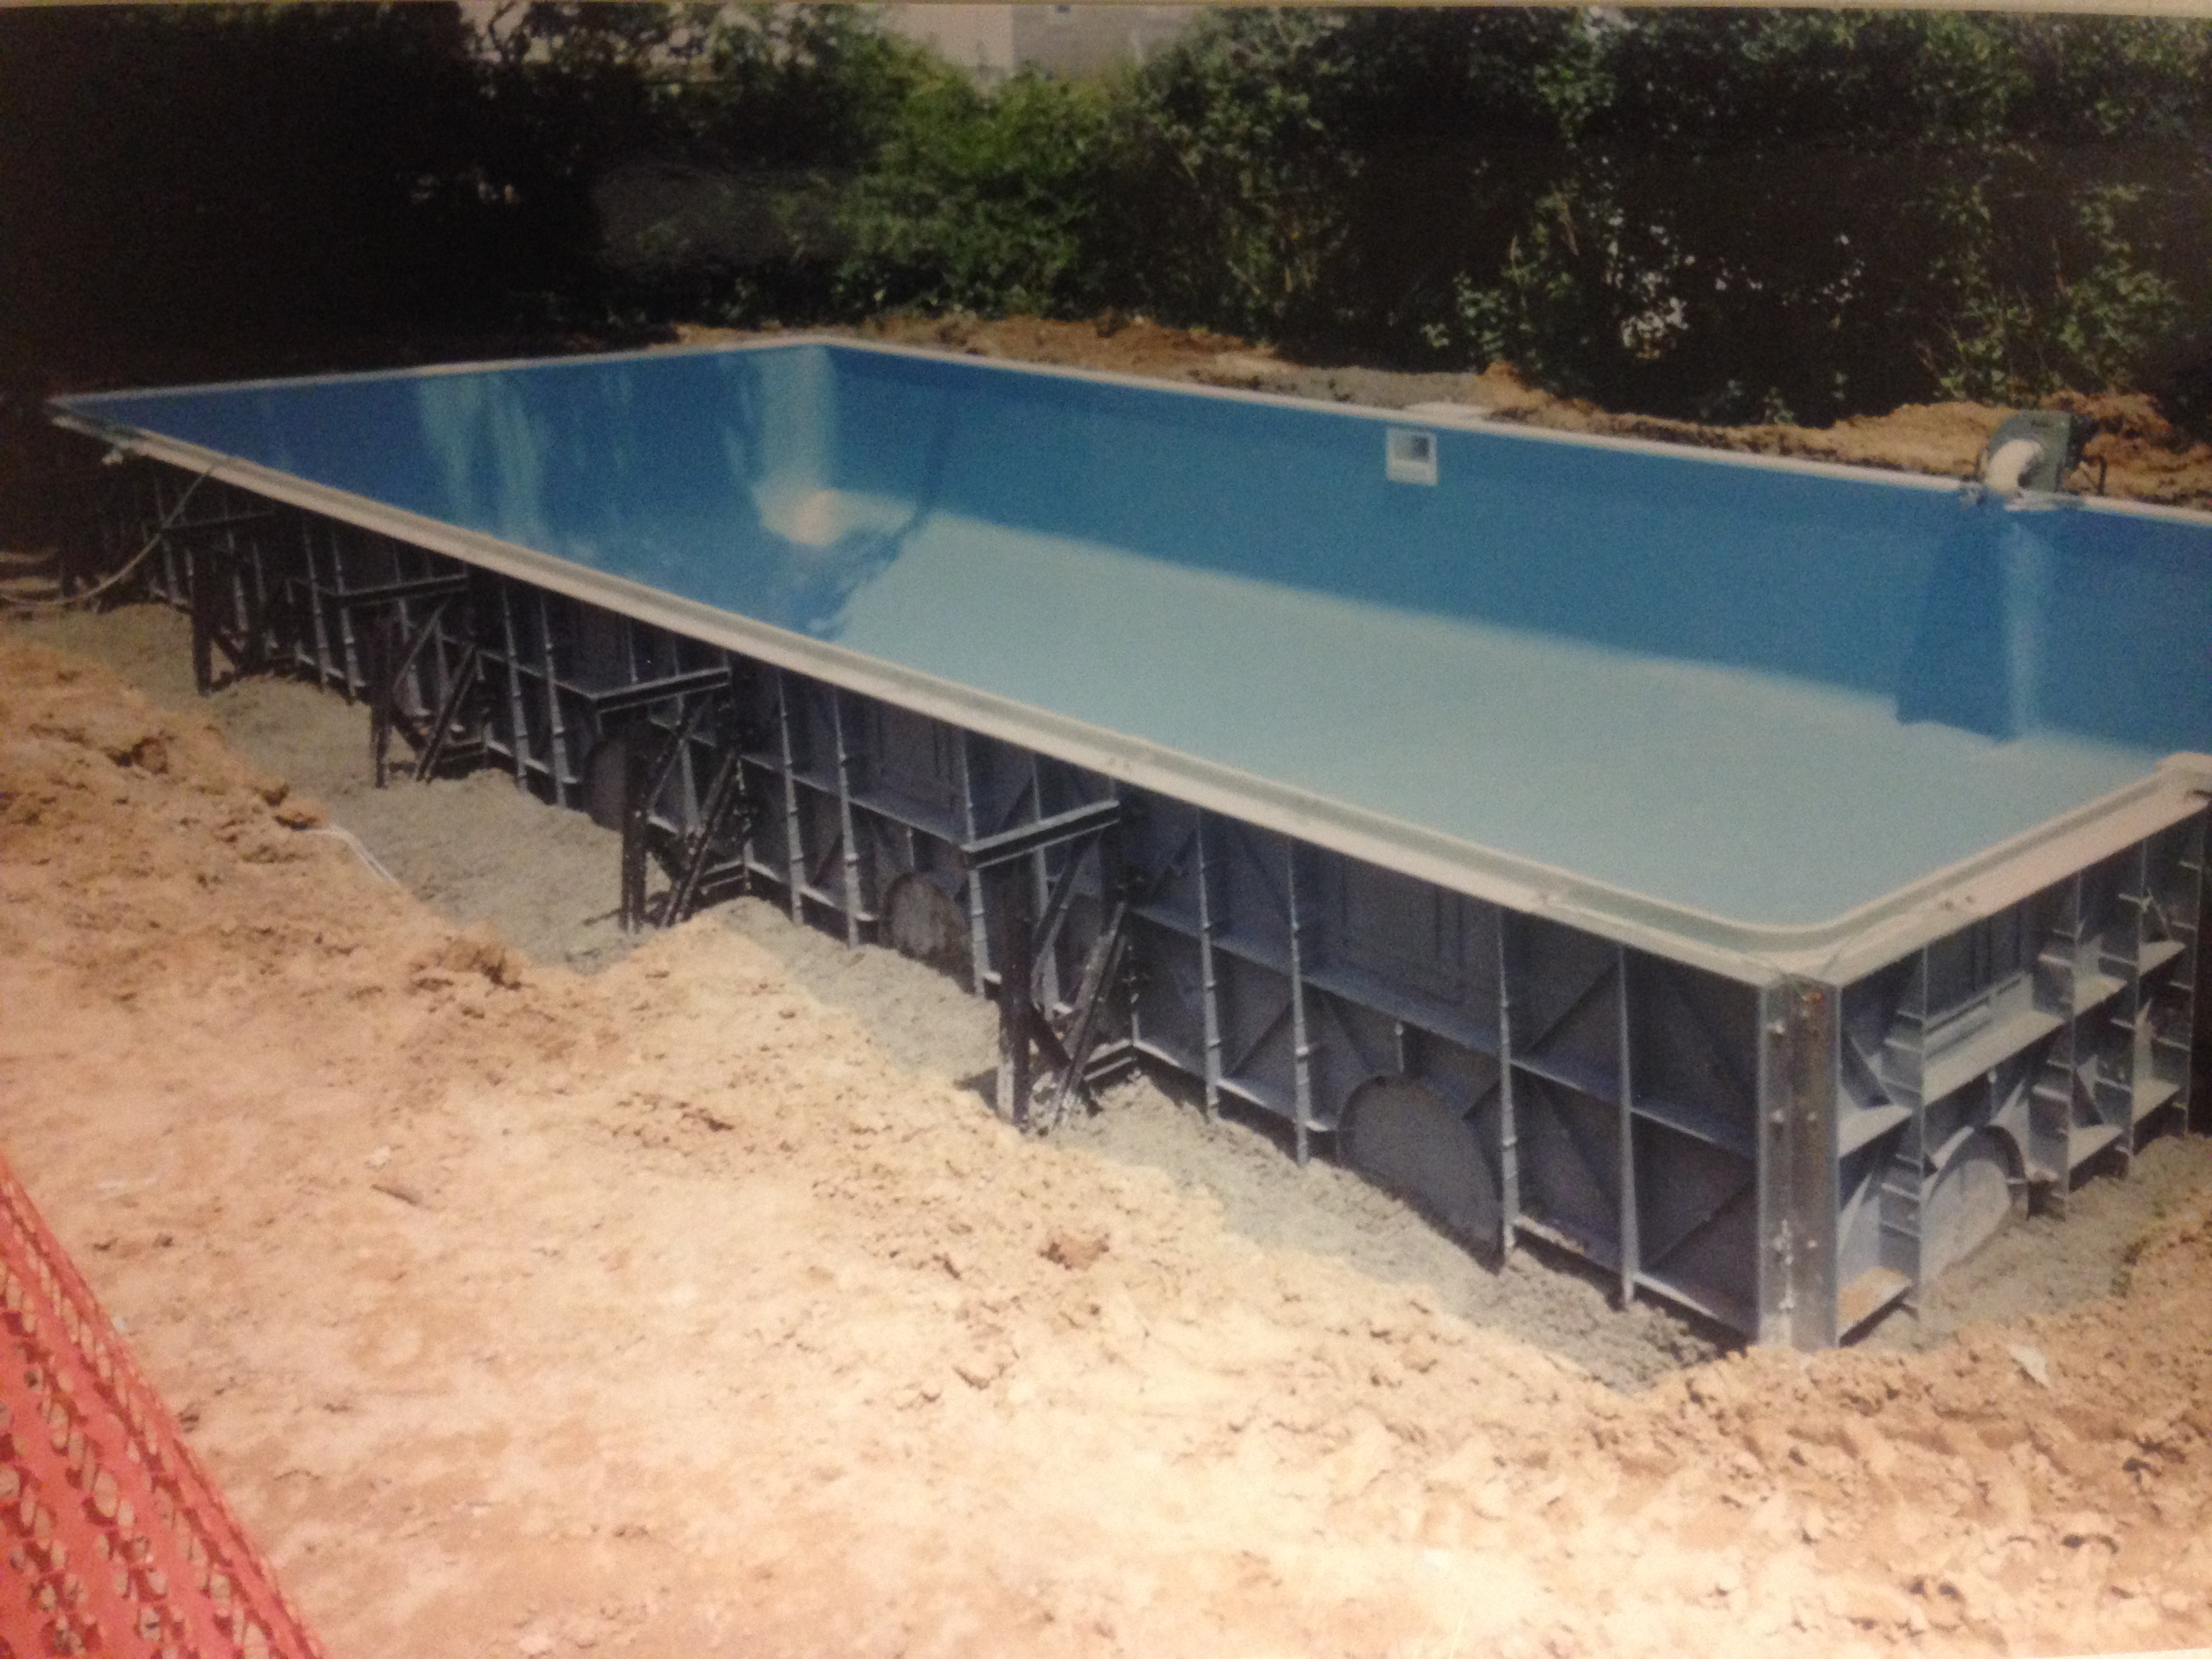 New jersey pool remodeling pool renovation repair for Pool redesign